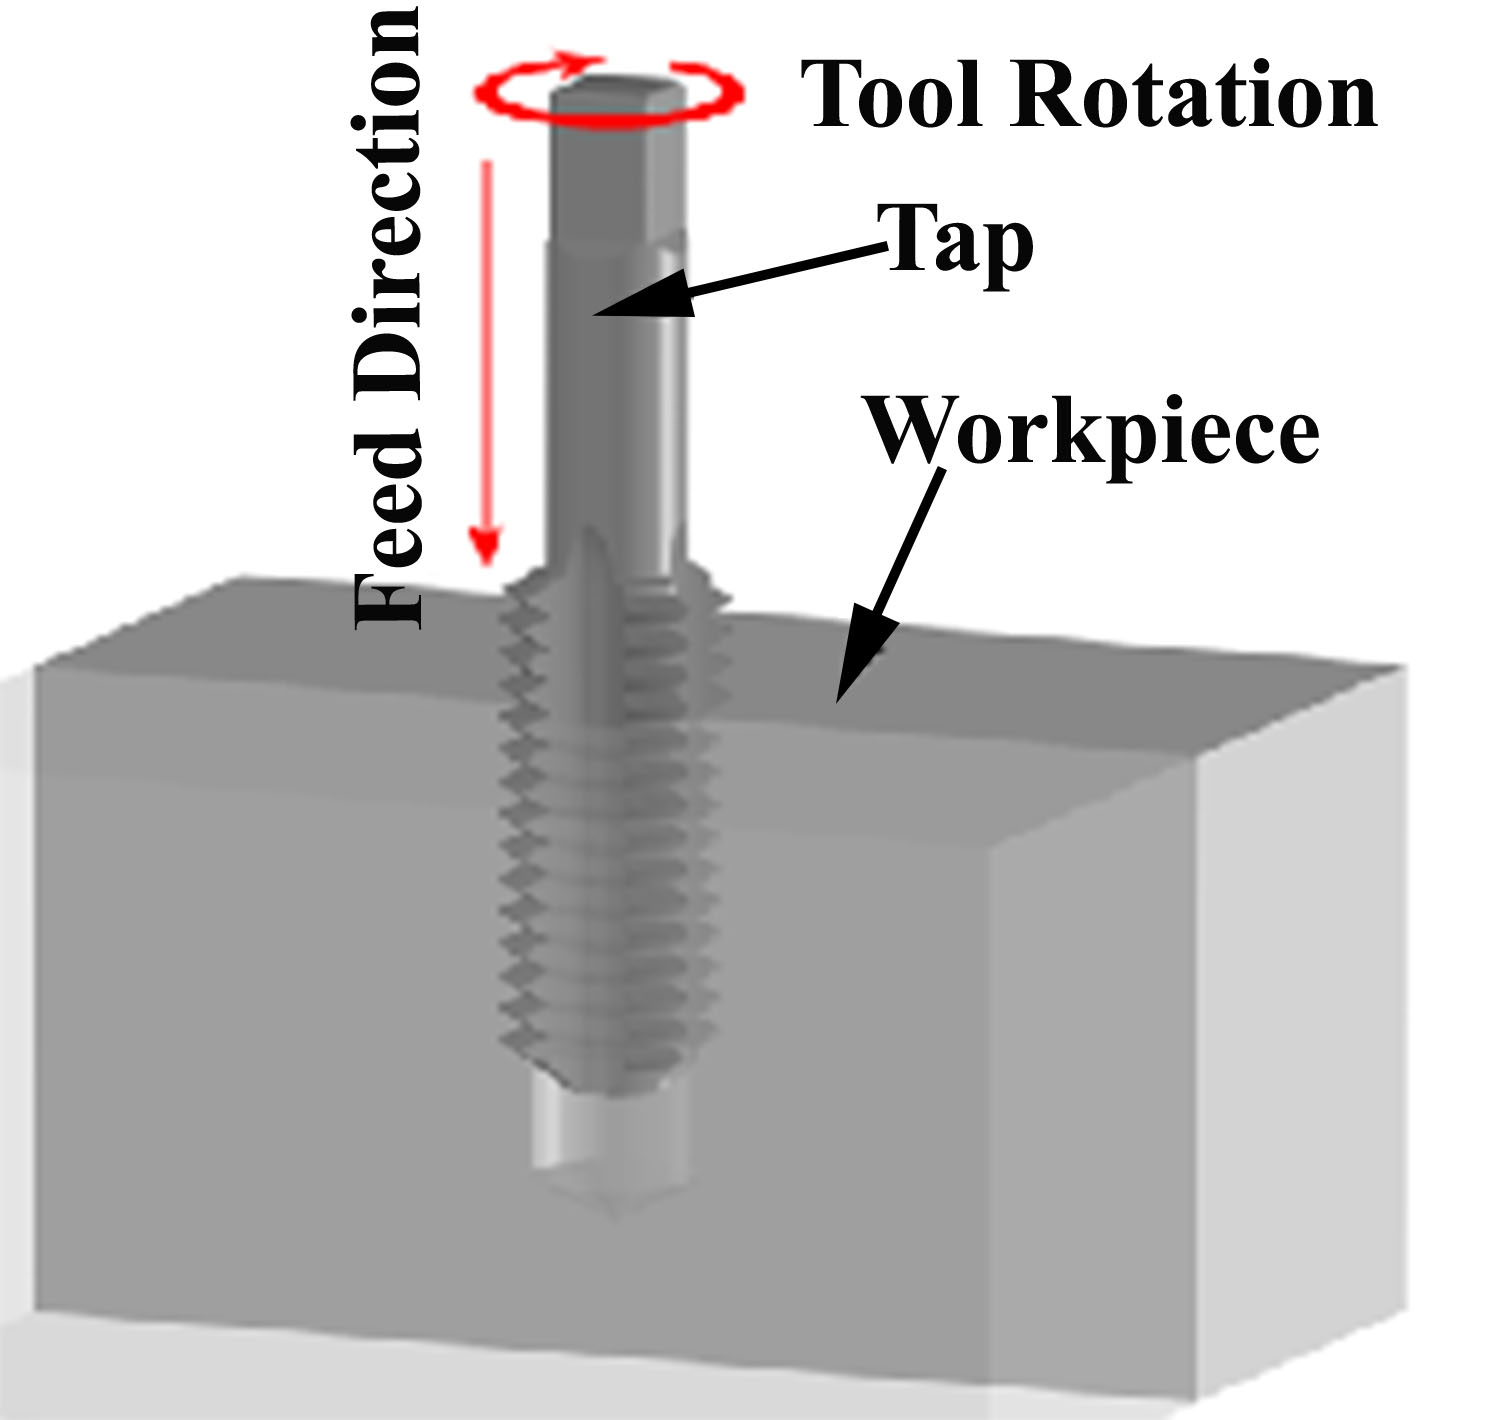 What Are The Operations Carried Out By Drilling Machine